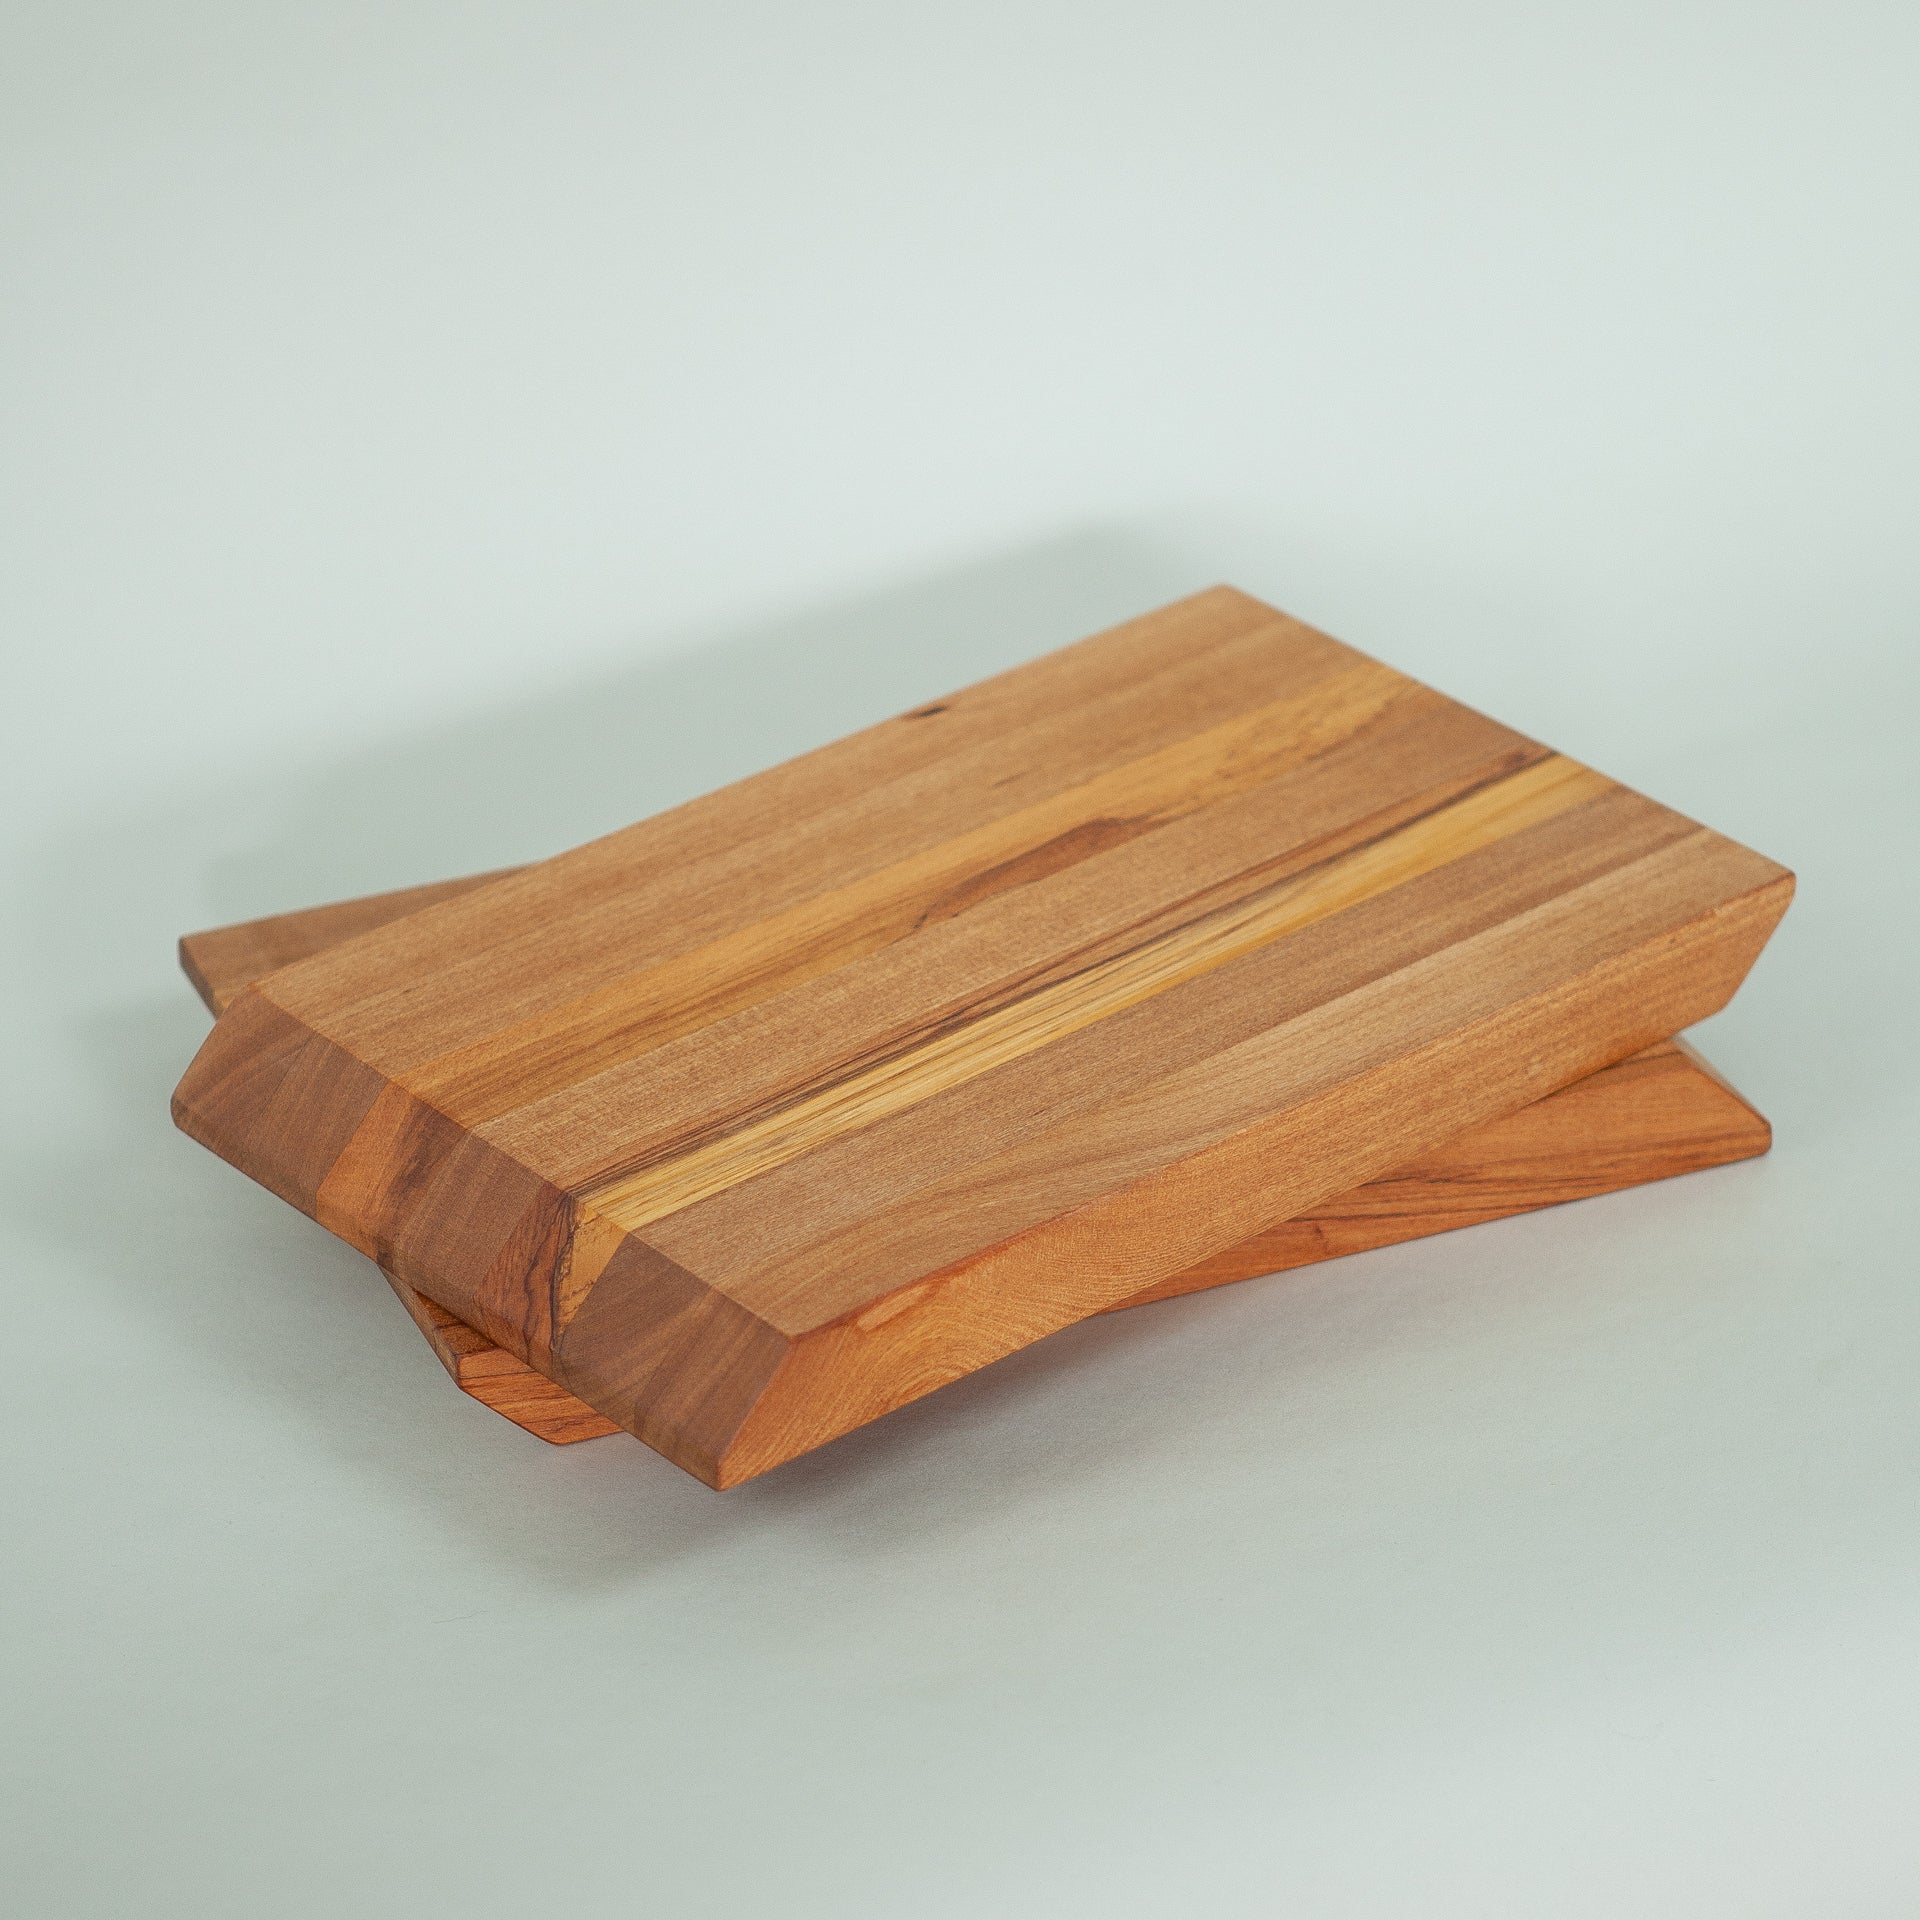 Rimu Blade Runner Serving Board